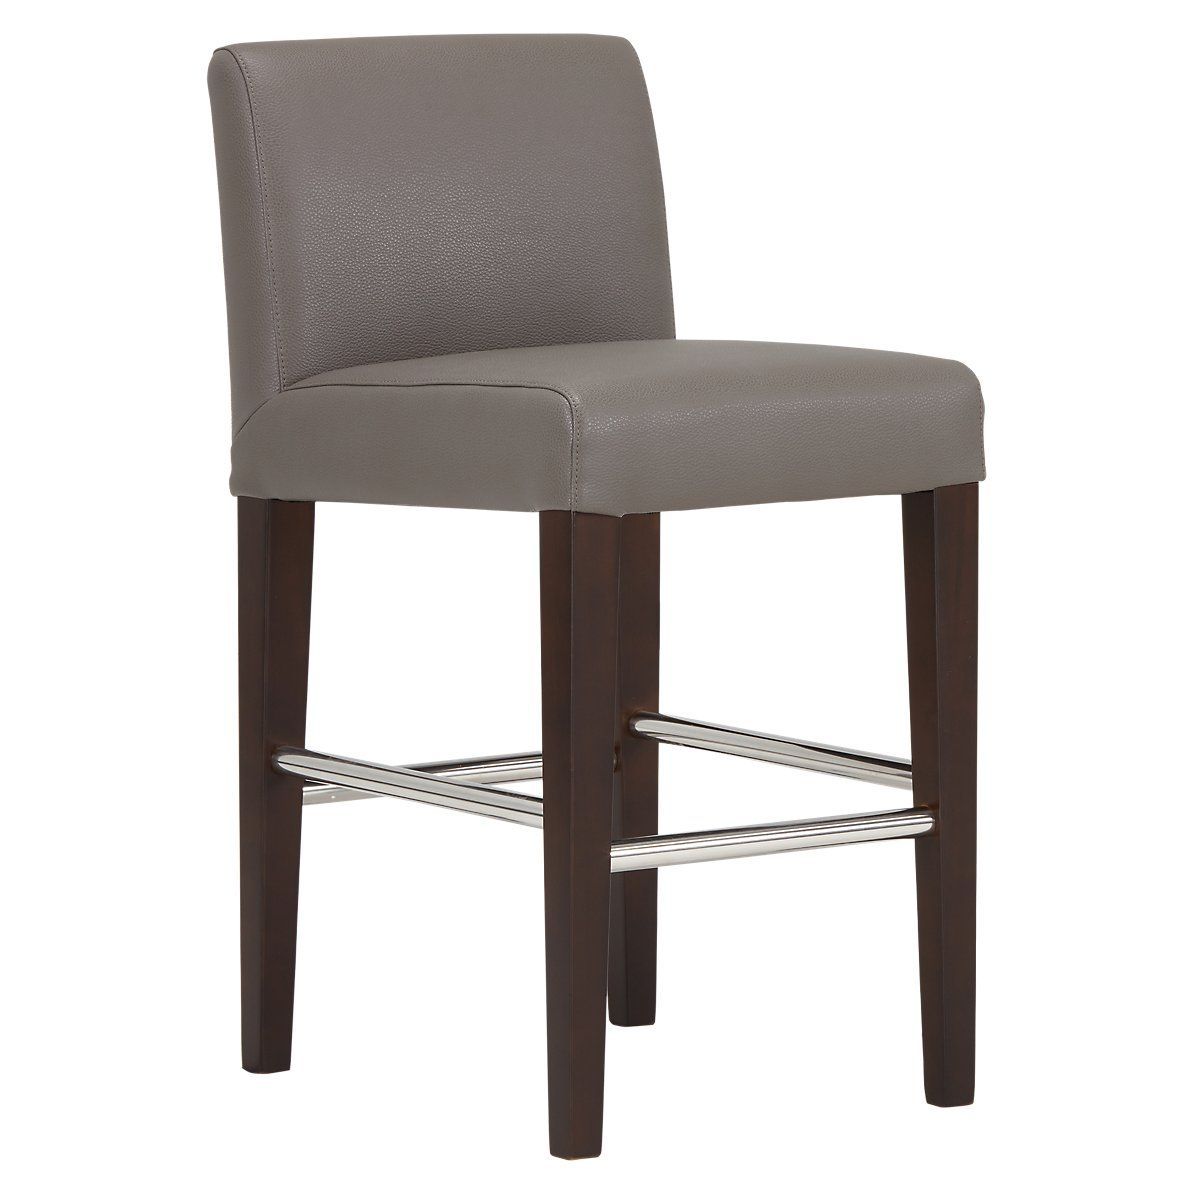 Miraculous Cane Gray Micro 24 Upholstered Barstool Dining Room Onthecornerstone Fun Painted Chair Ideas Images Onthecornerstoneorg